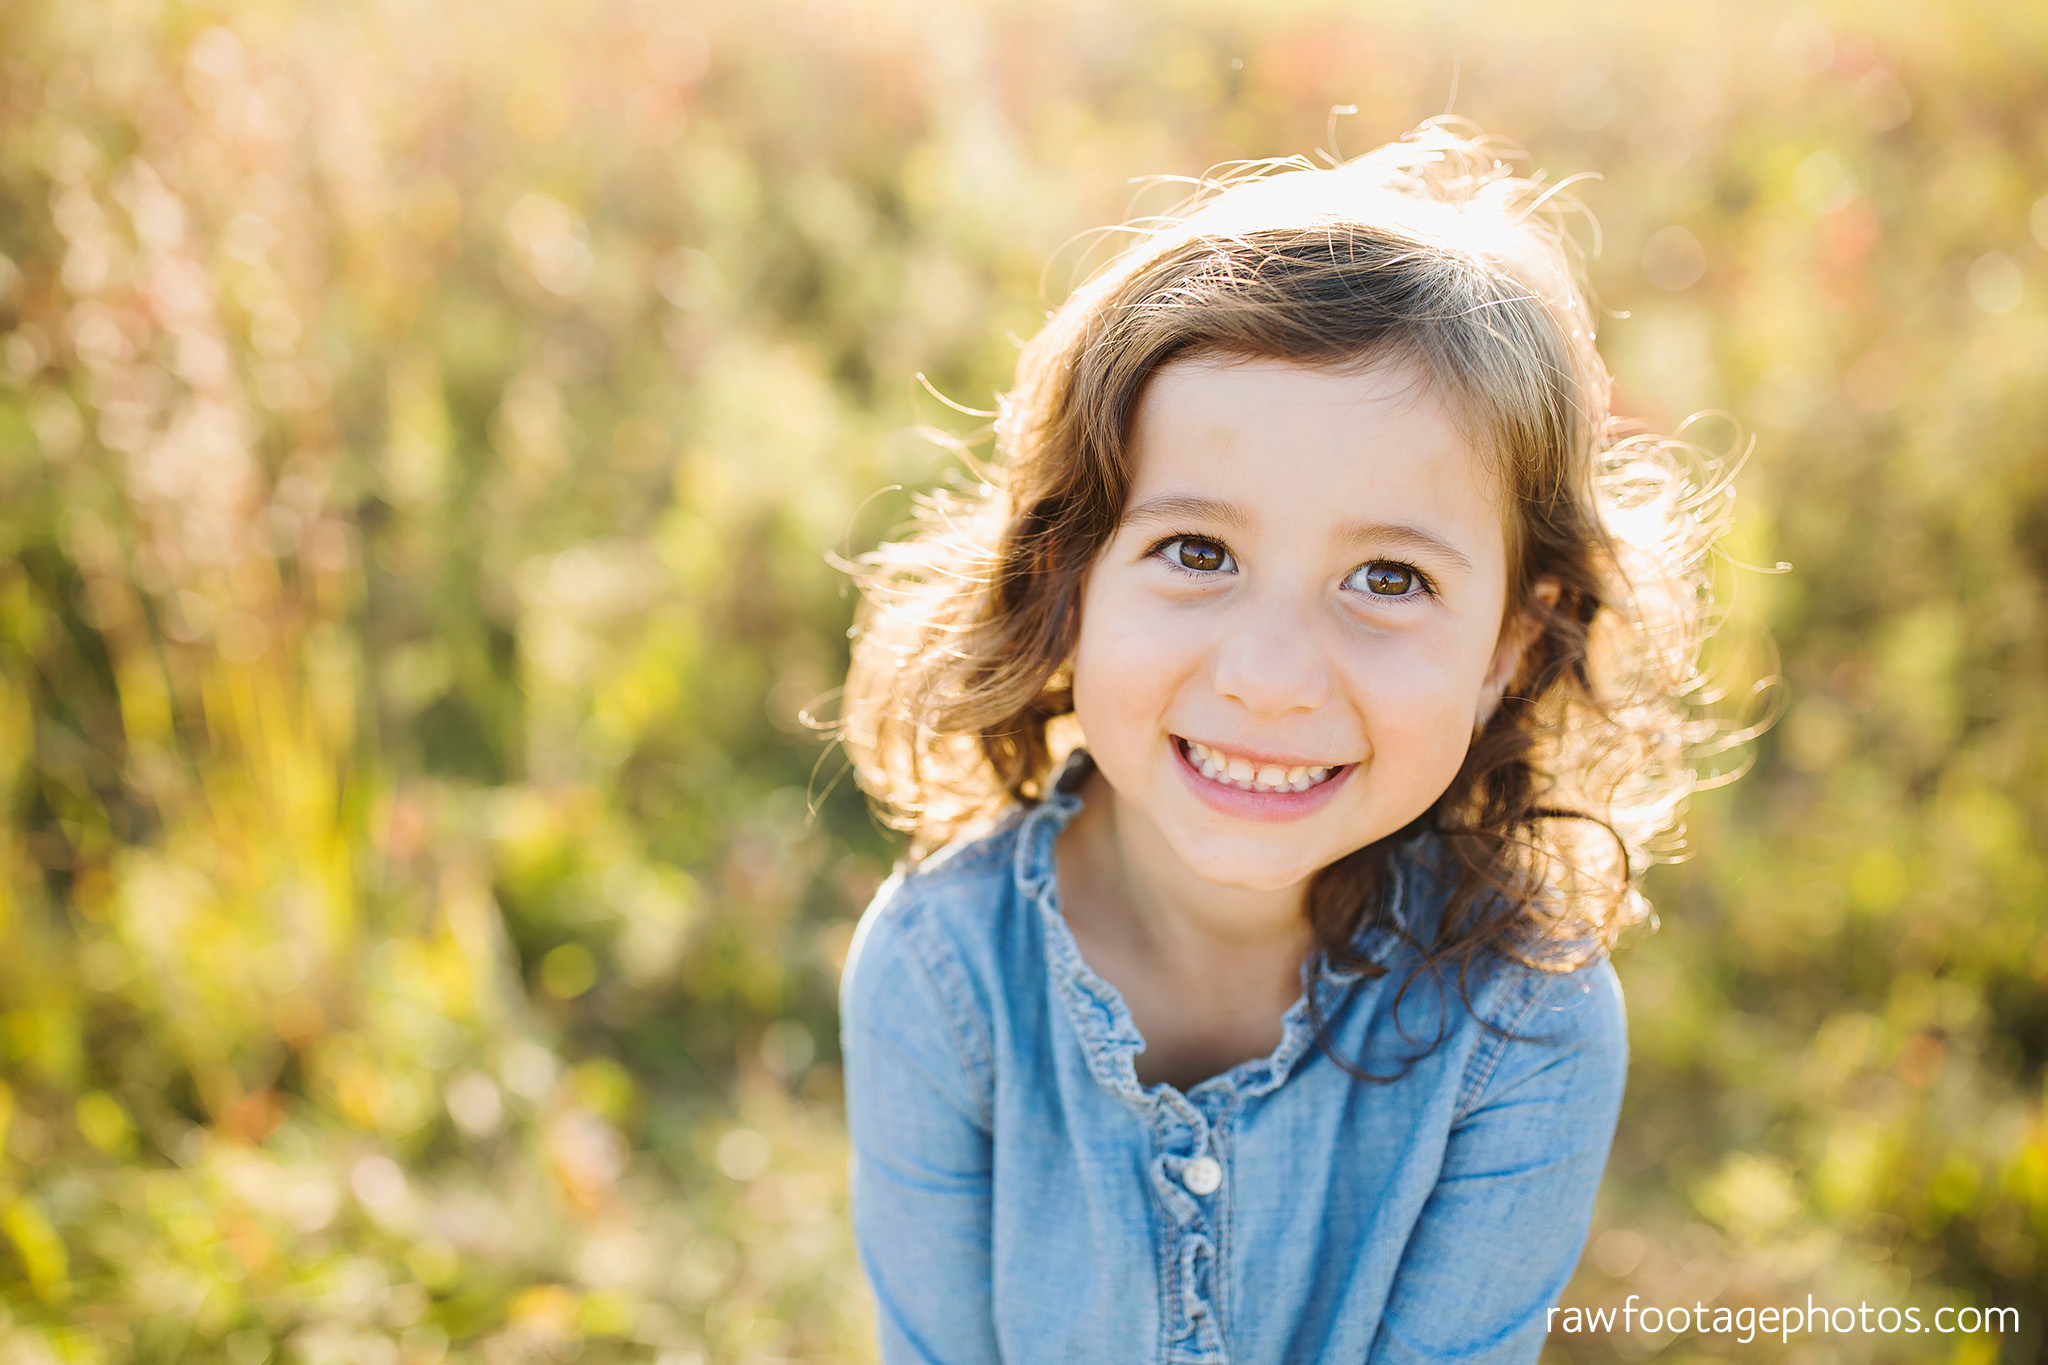 london_ontario_family_photographer-golden_hour_maternity_session-raw_footage_photography019.jpg